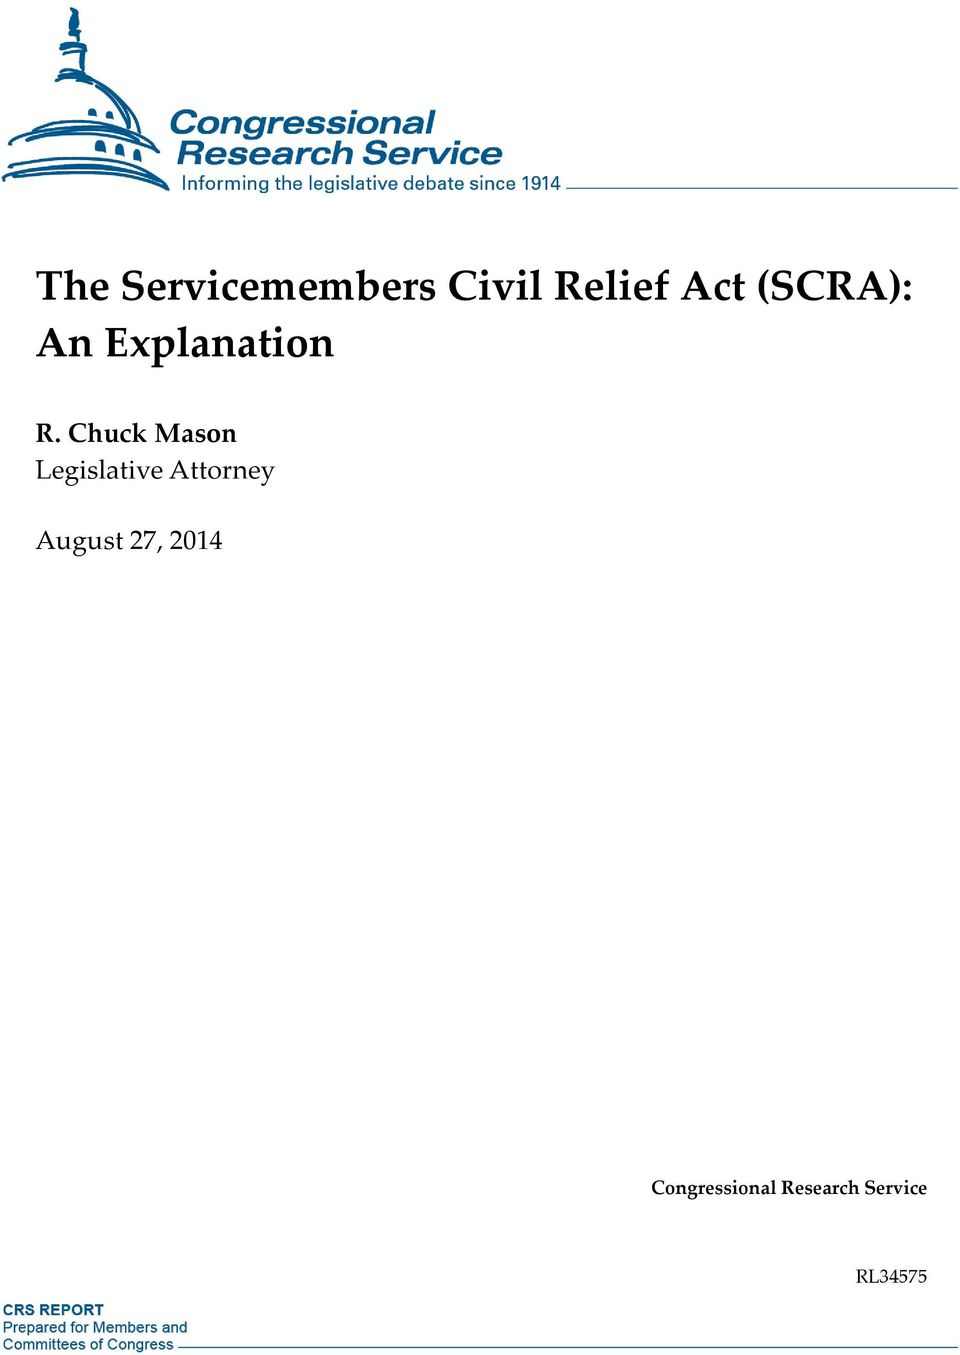 The Servicemembers Civil Relief Act (SCRA): Does It Provide for a Private Cause of Action?